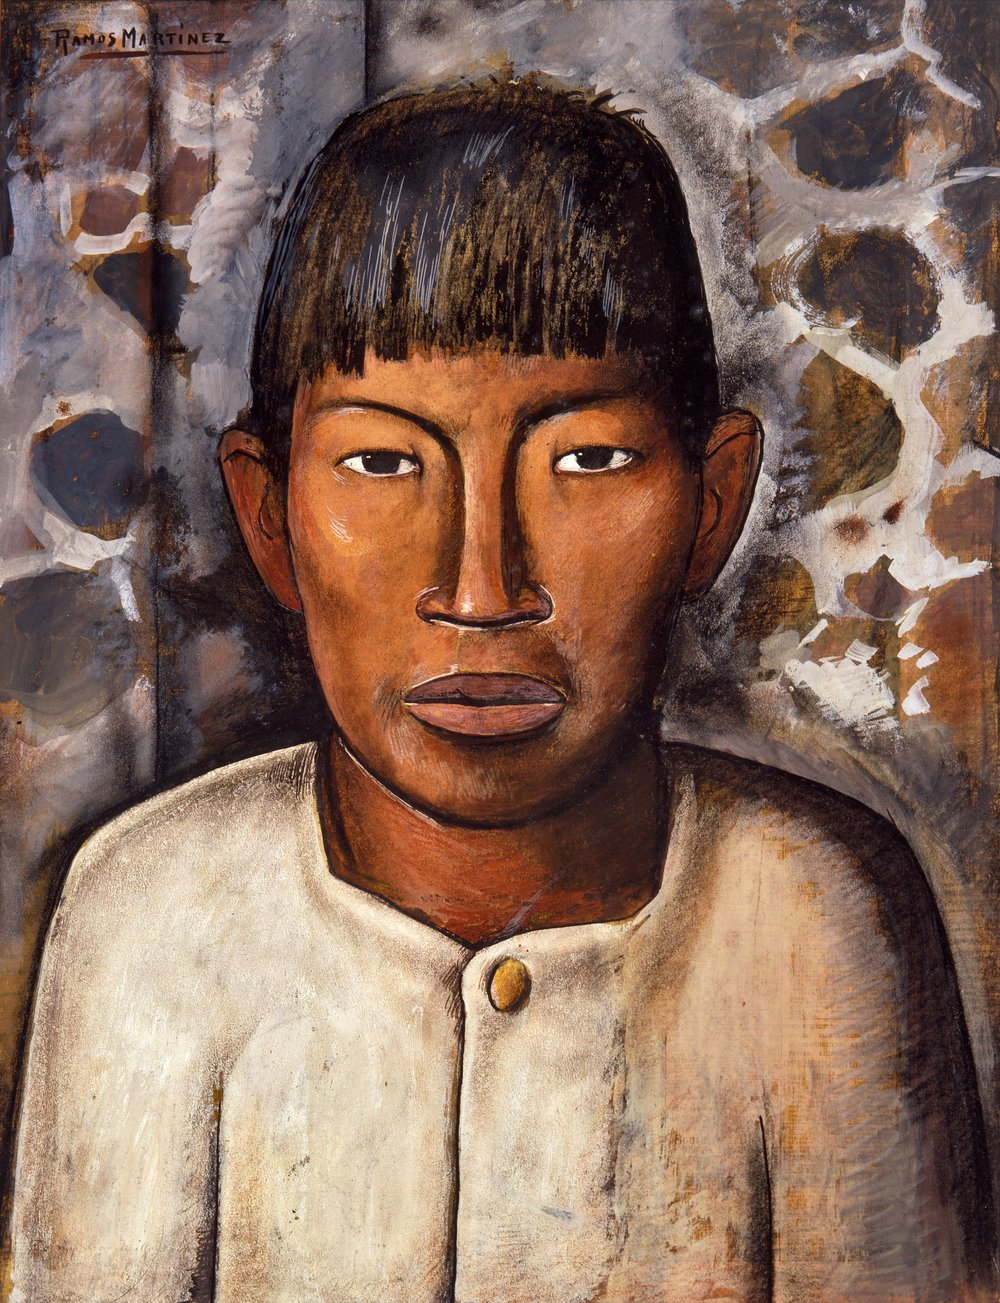 Muchacho Mexicano / Mexican Boy  ca. 1938 gouache and charcoal on newsprint / aguada y carbón sobre papel periódico 21.3 x 16.5 inches / 54 x 41.9 centímetros Private collection